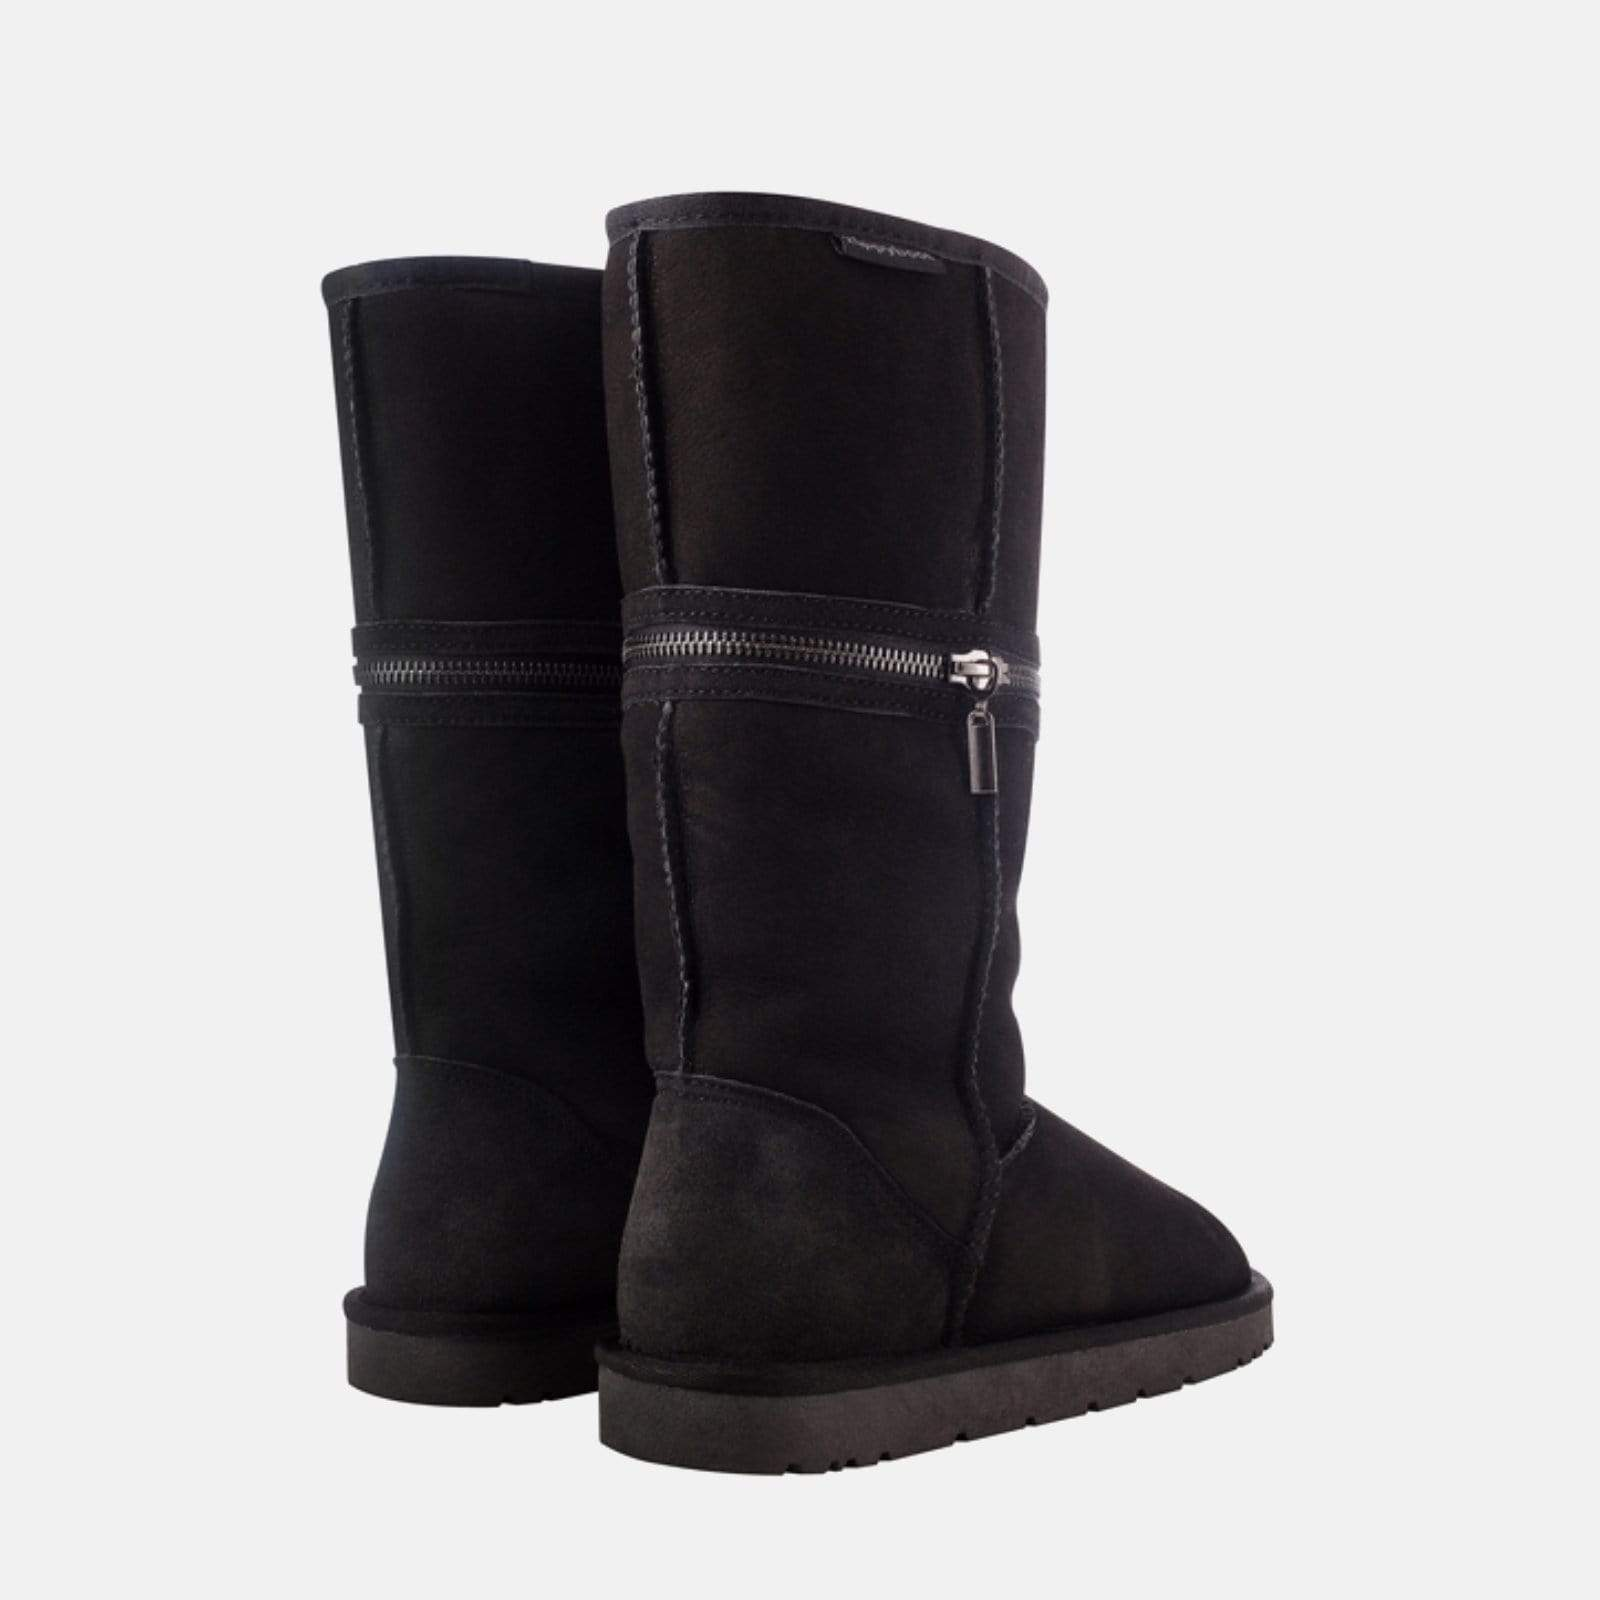 Redfoot Footwear LUCY BLACK - Australian Sheepskin